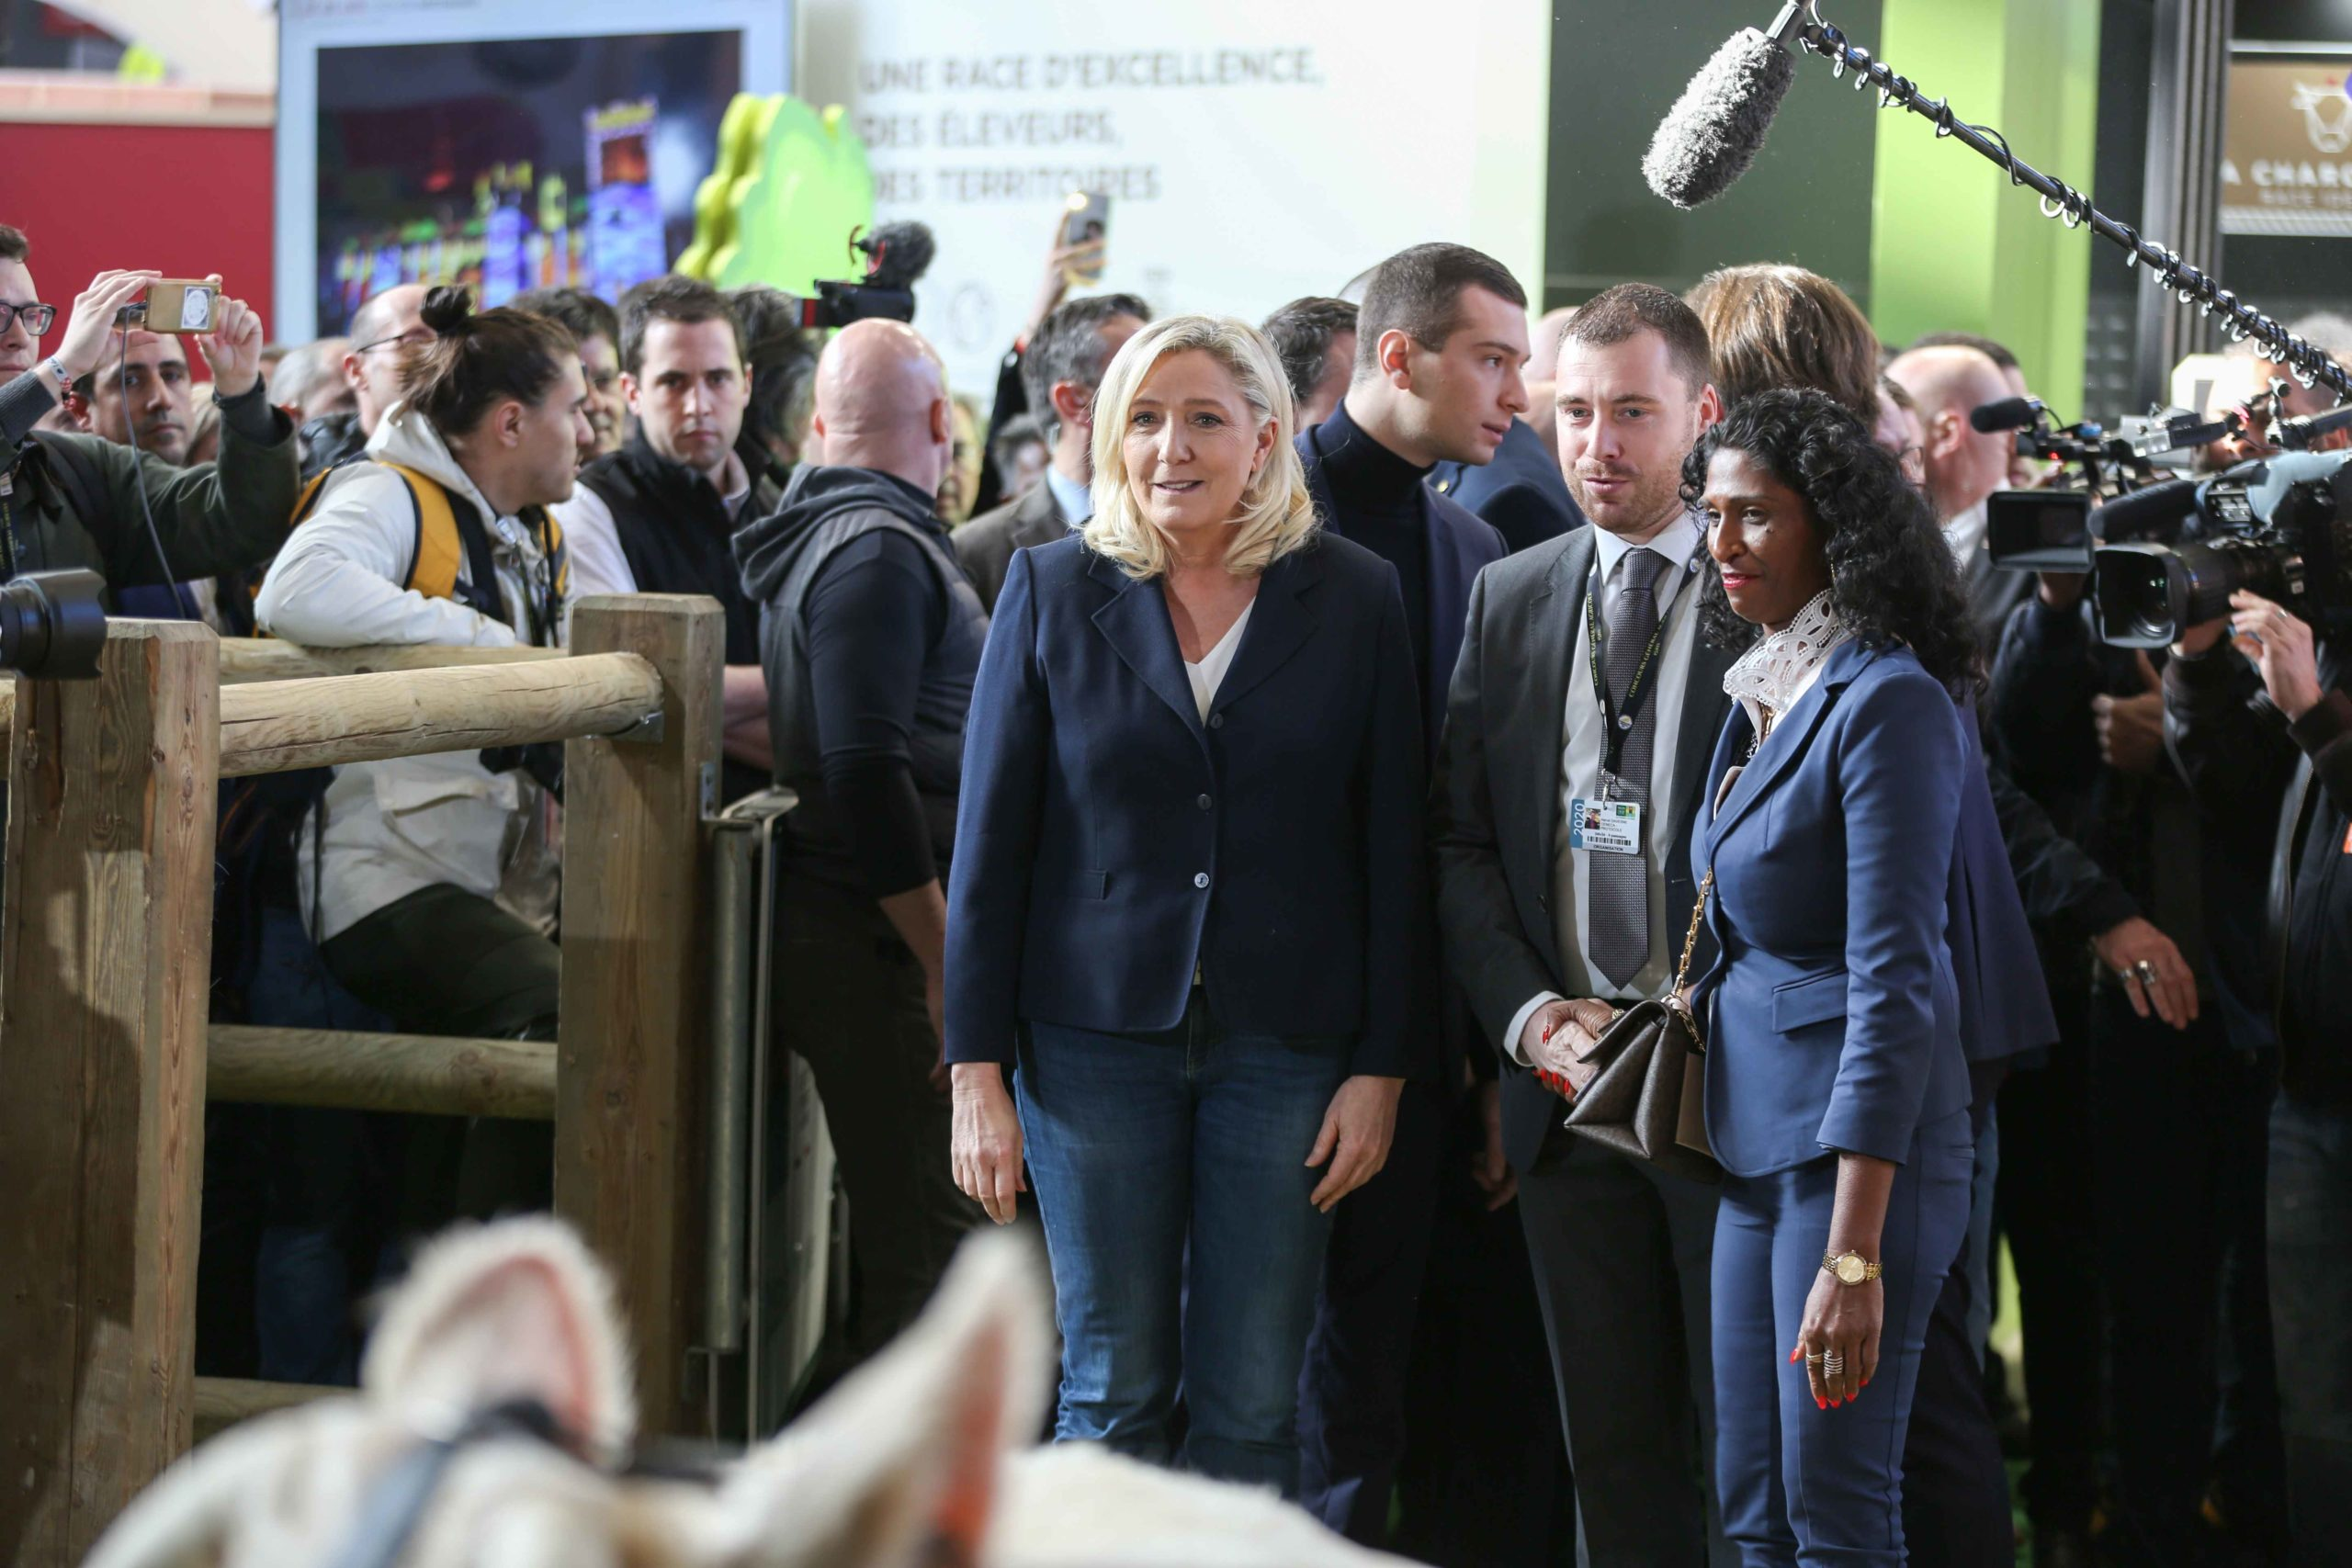 Marine Le Pen visite le Salon international de l'agriculture. © Michel Stoupak. Mar 25.02.2020, 10:03:06.